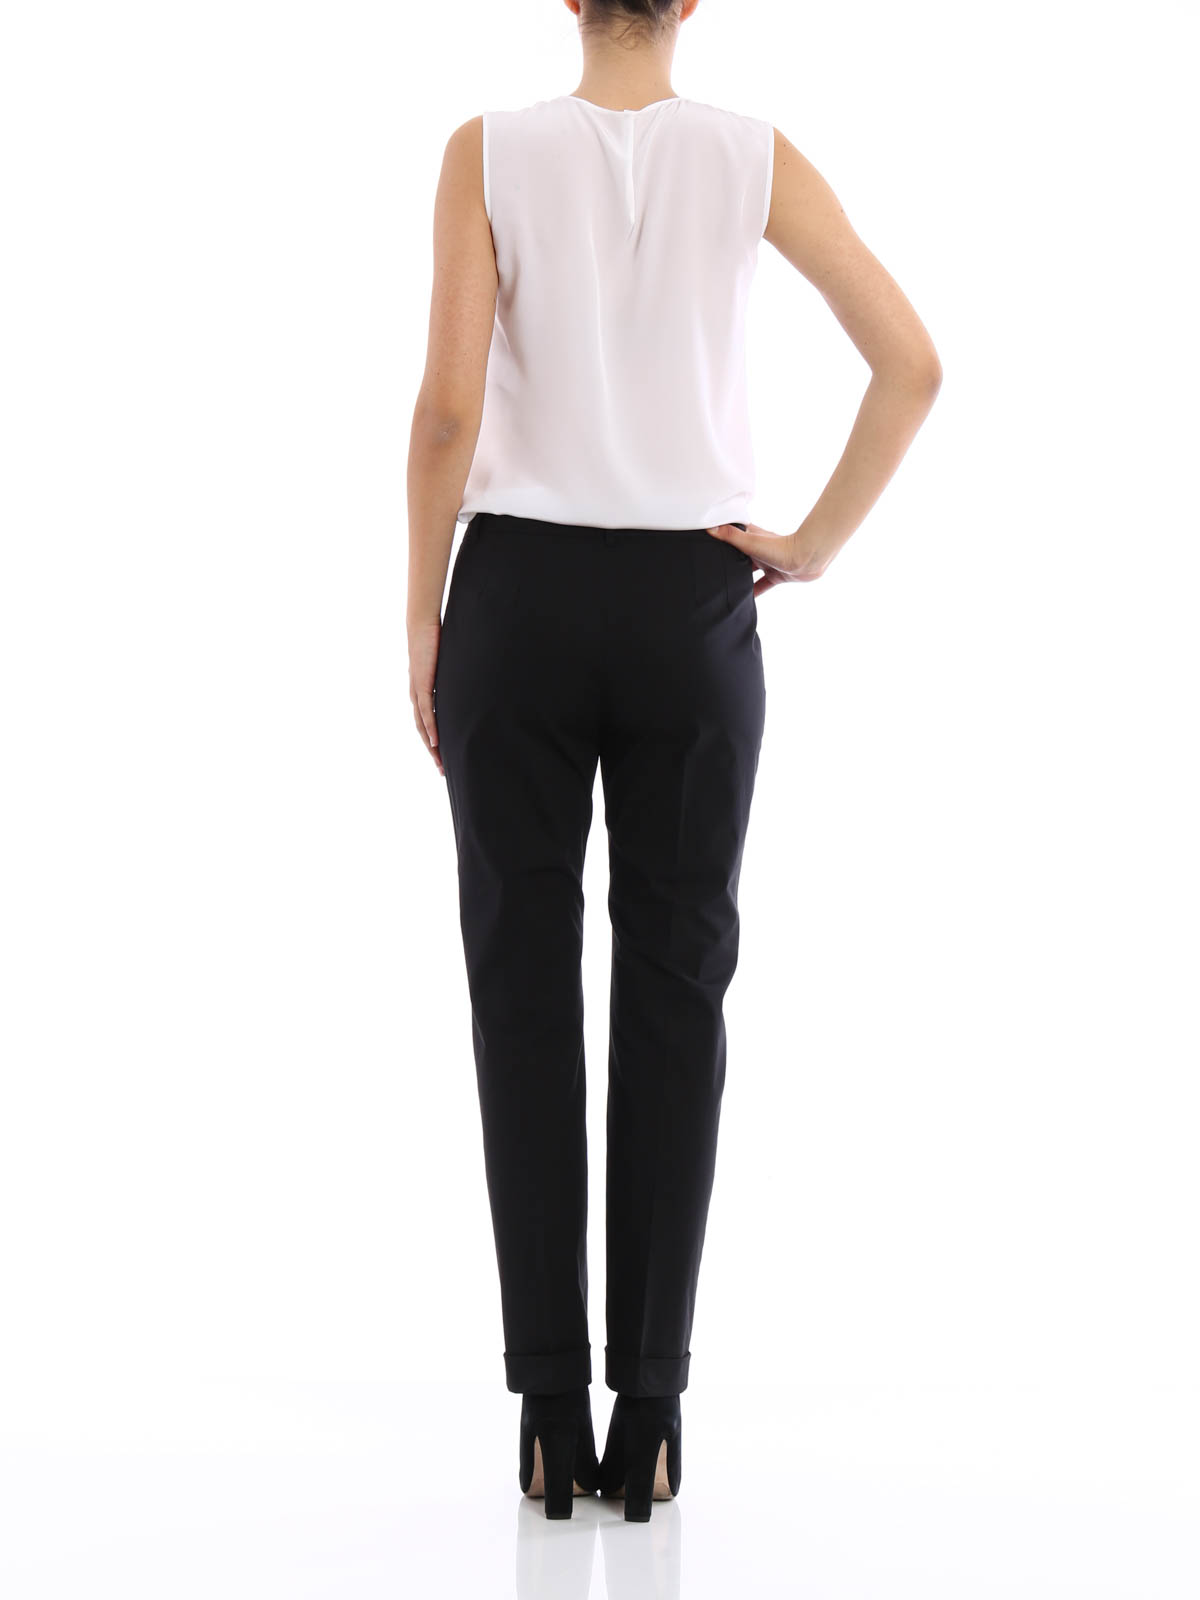 Simple Details About Womens PU Belted Cotton Cigarette Trousers Stretch Jeans